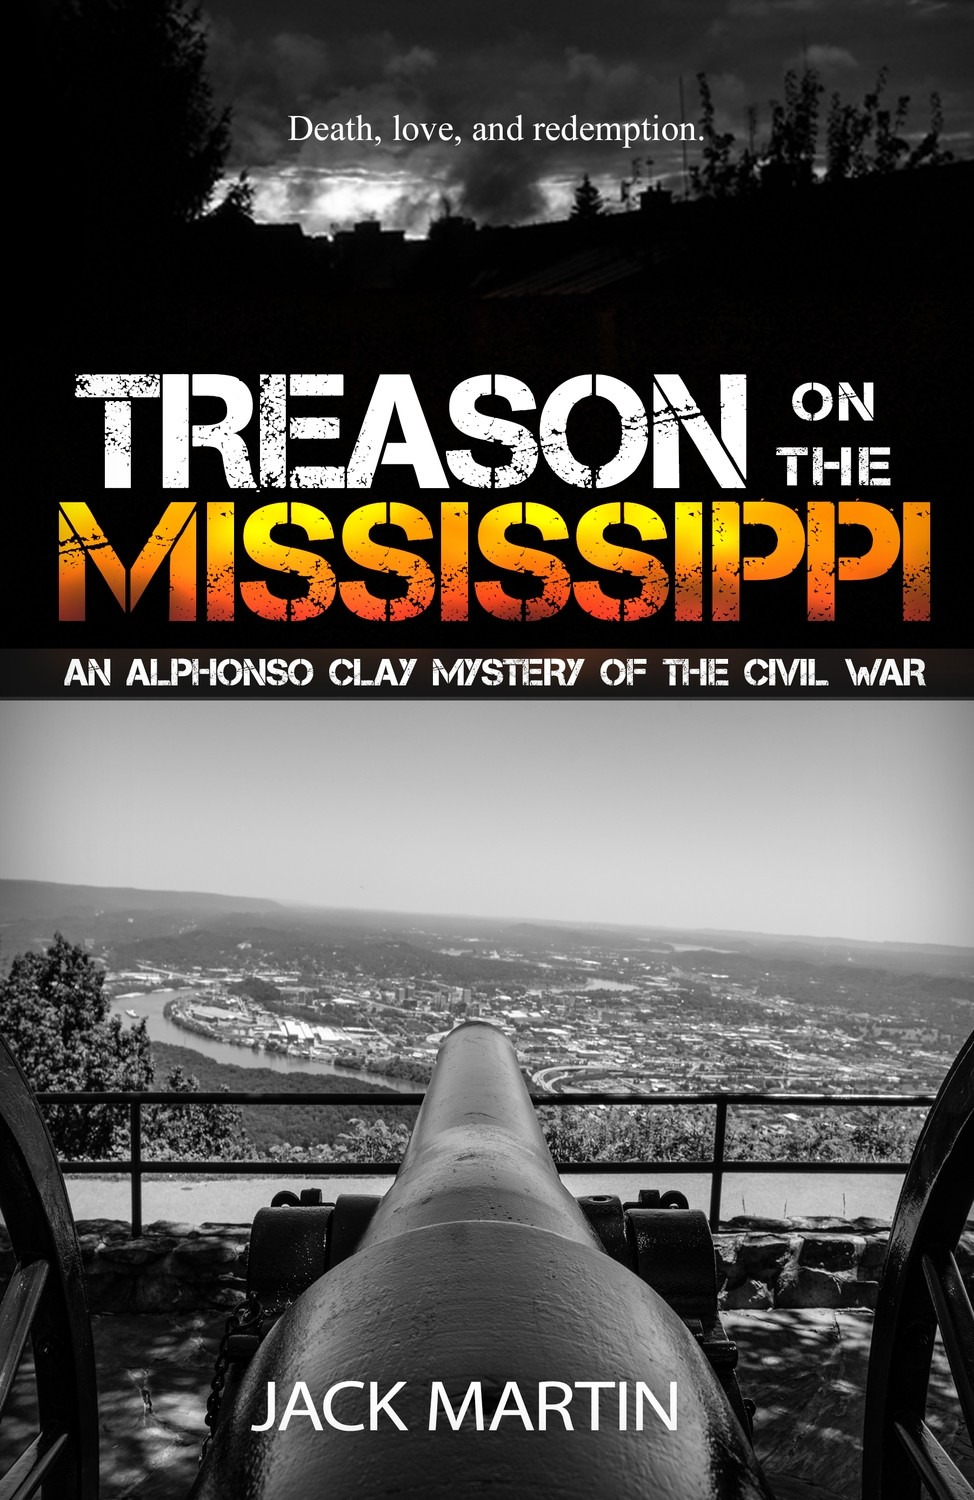 Treason on the Mississippi (An Alphonso Clay Mystery of the Civil War, Book 1)